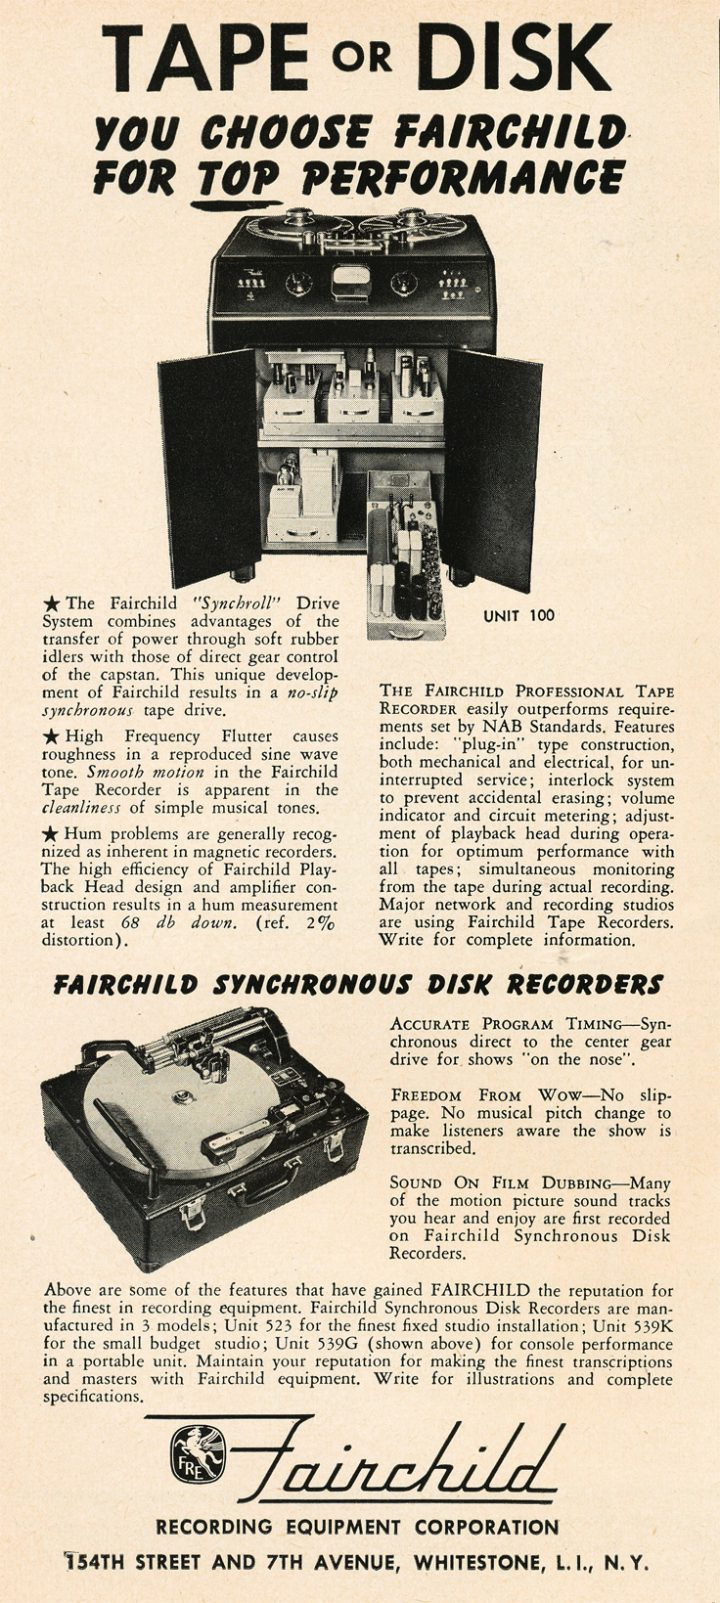 ab66f9b0d50 Fairchild Recording Equipment was an early developer of tape recorders, and  for several years continued to offer disk recorders and lathes in parallel  with ...